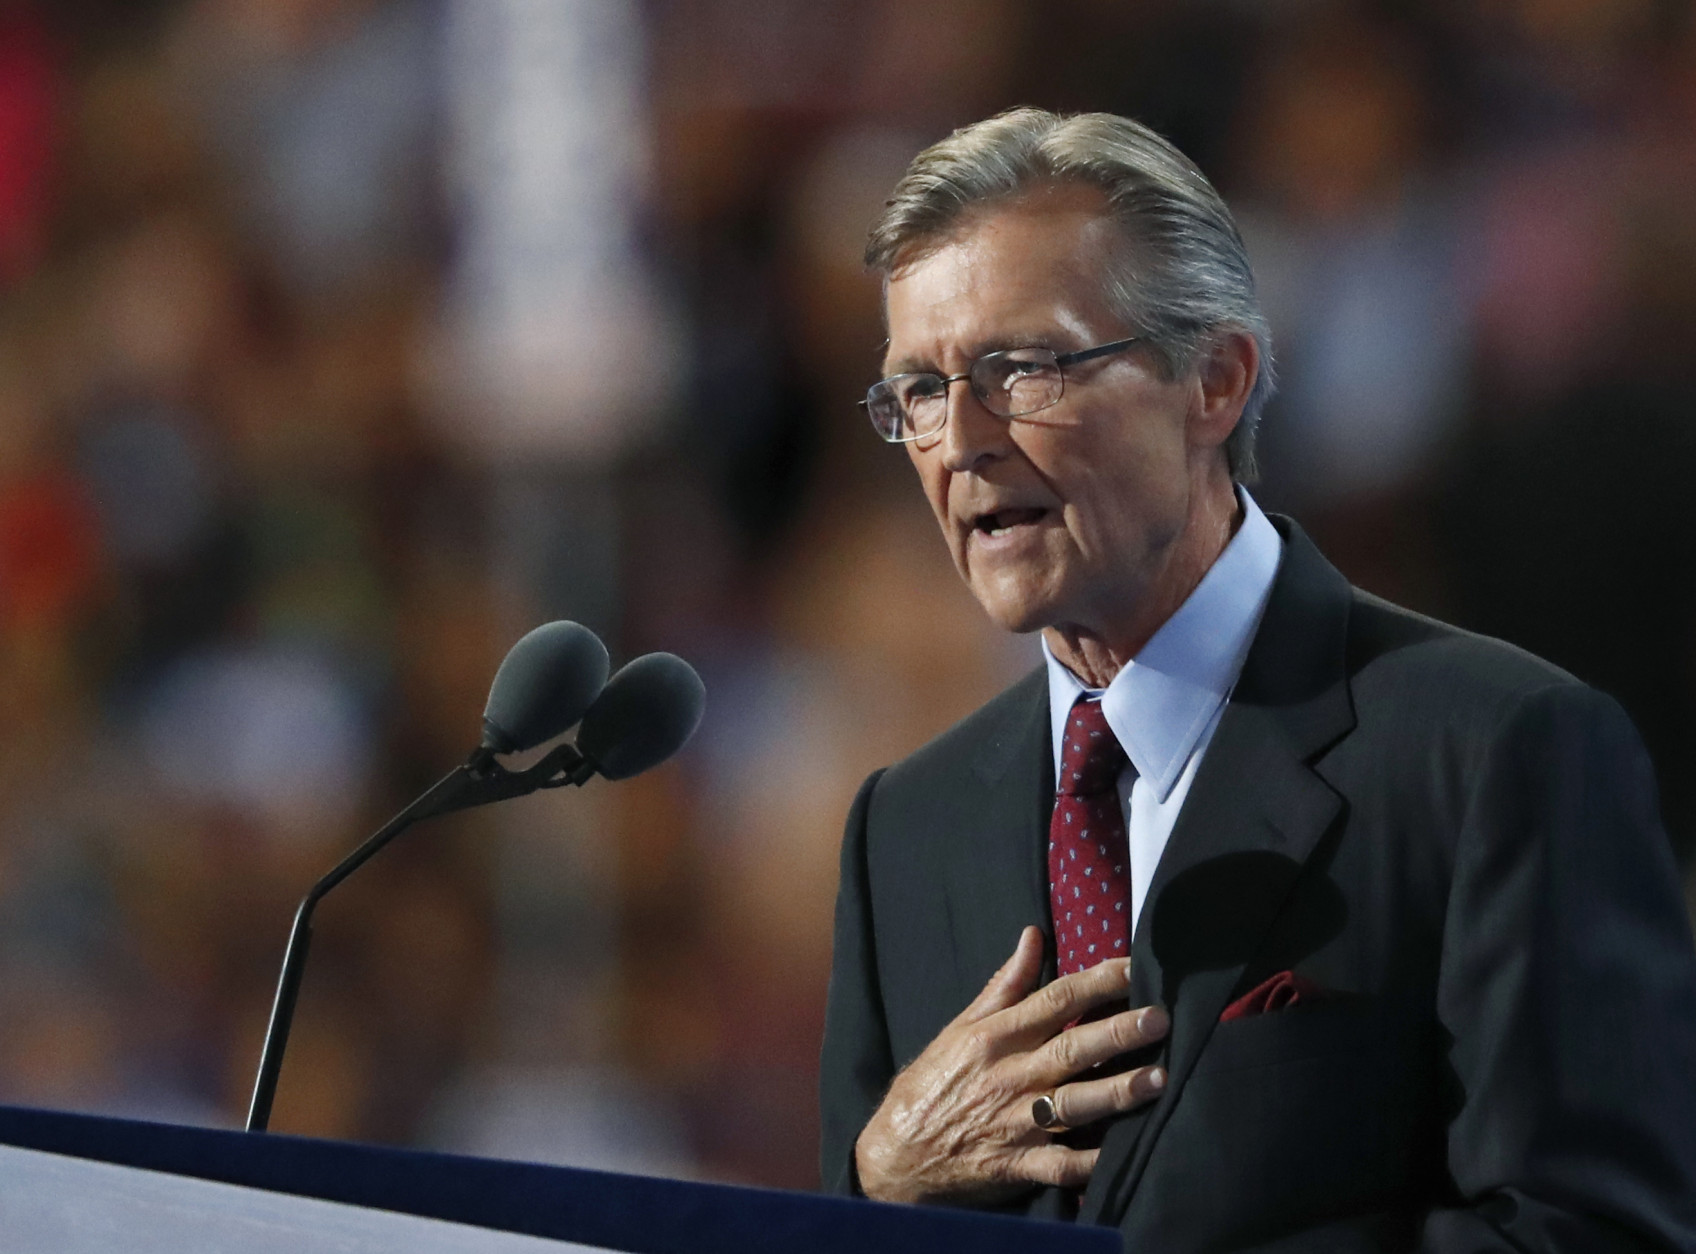 Rear Admiral John Hutson (Ret.), speaks during the third day of the Democratic National Convention in Philadelphia , Wednesday, July 27, 2016. (AP Photo/Paul Sancya)